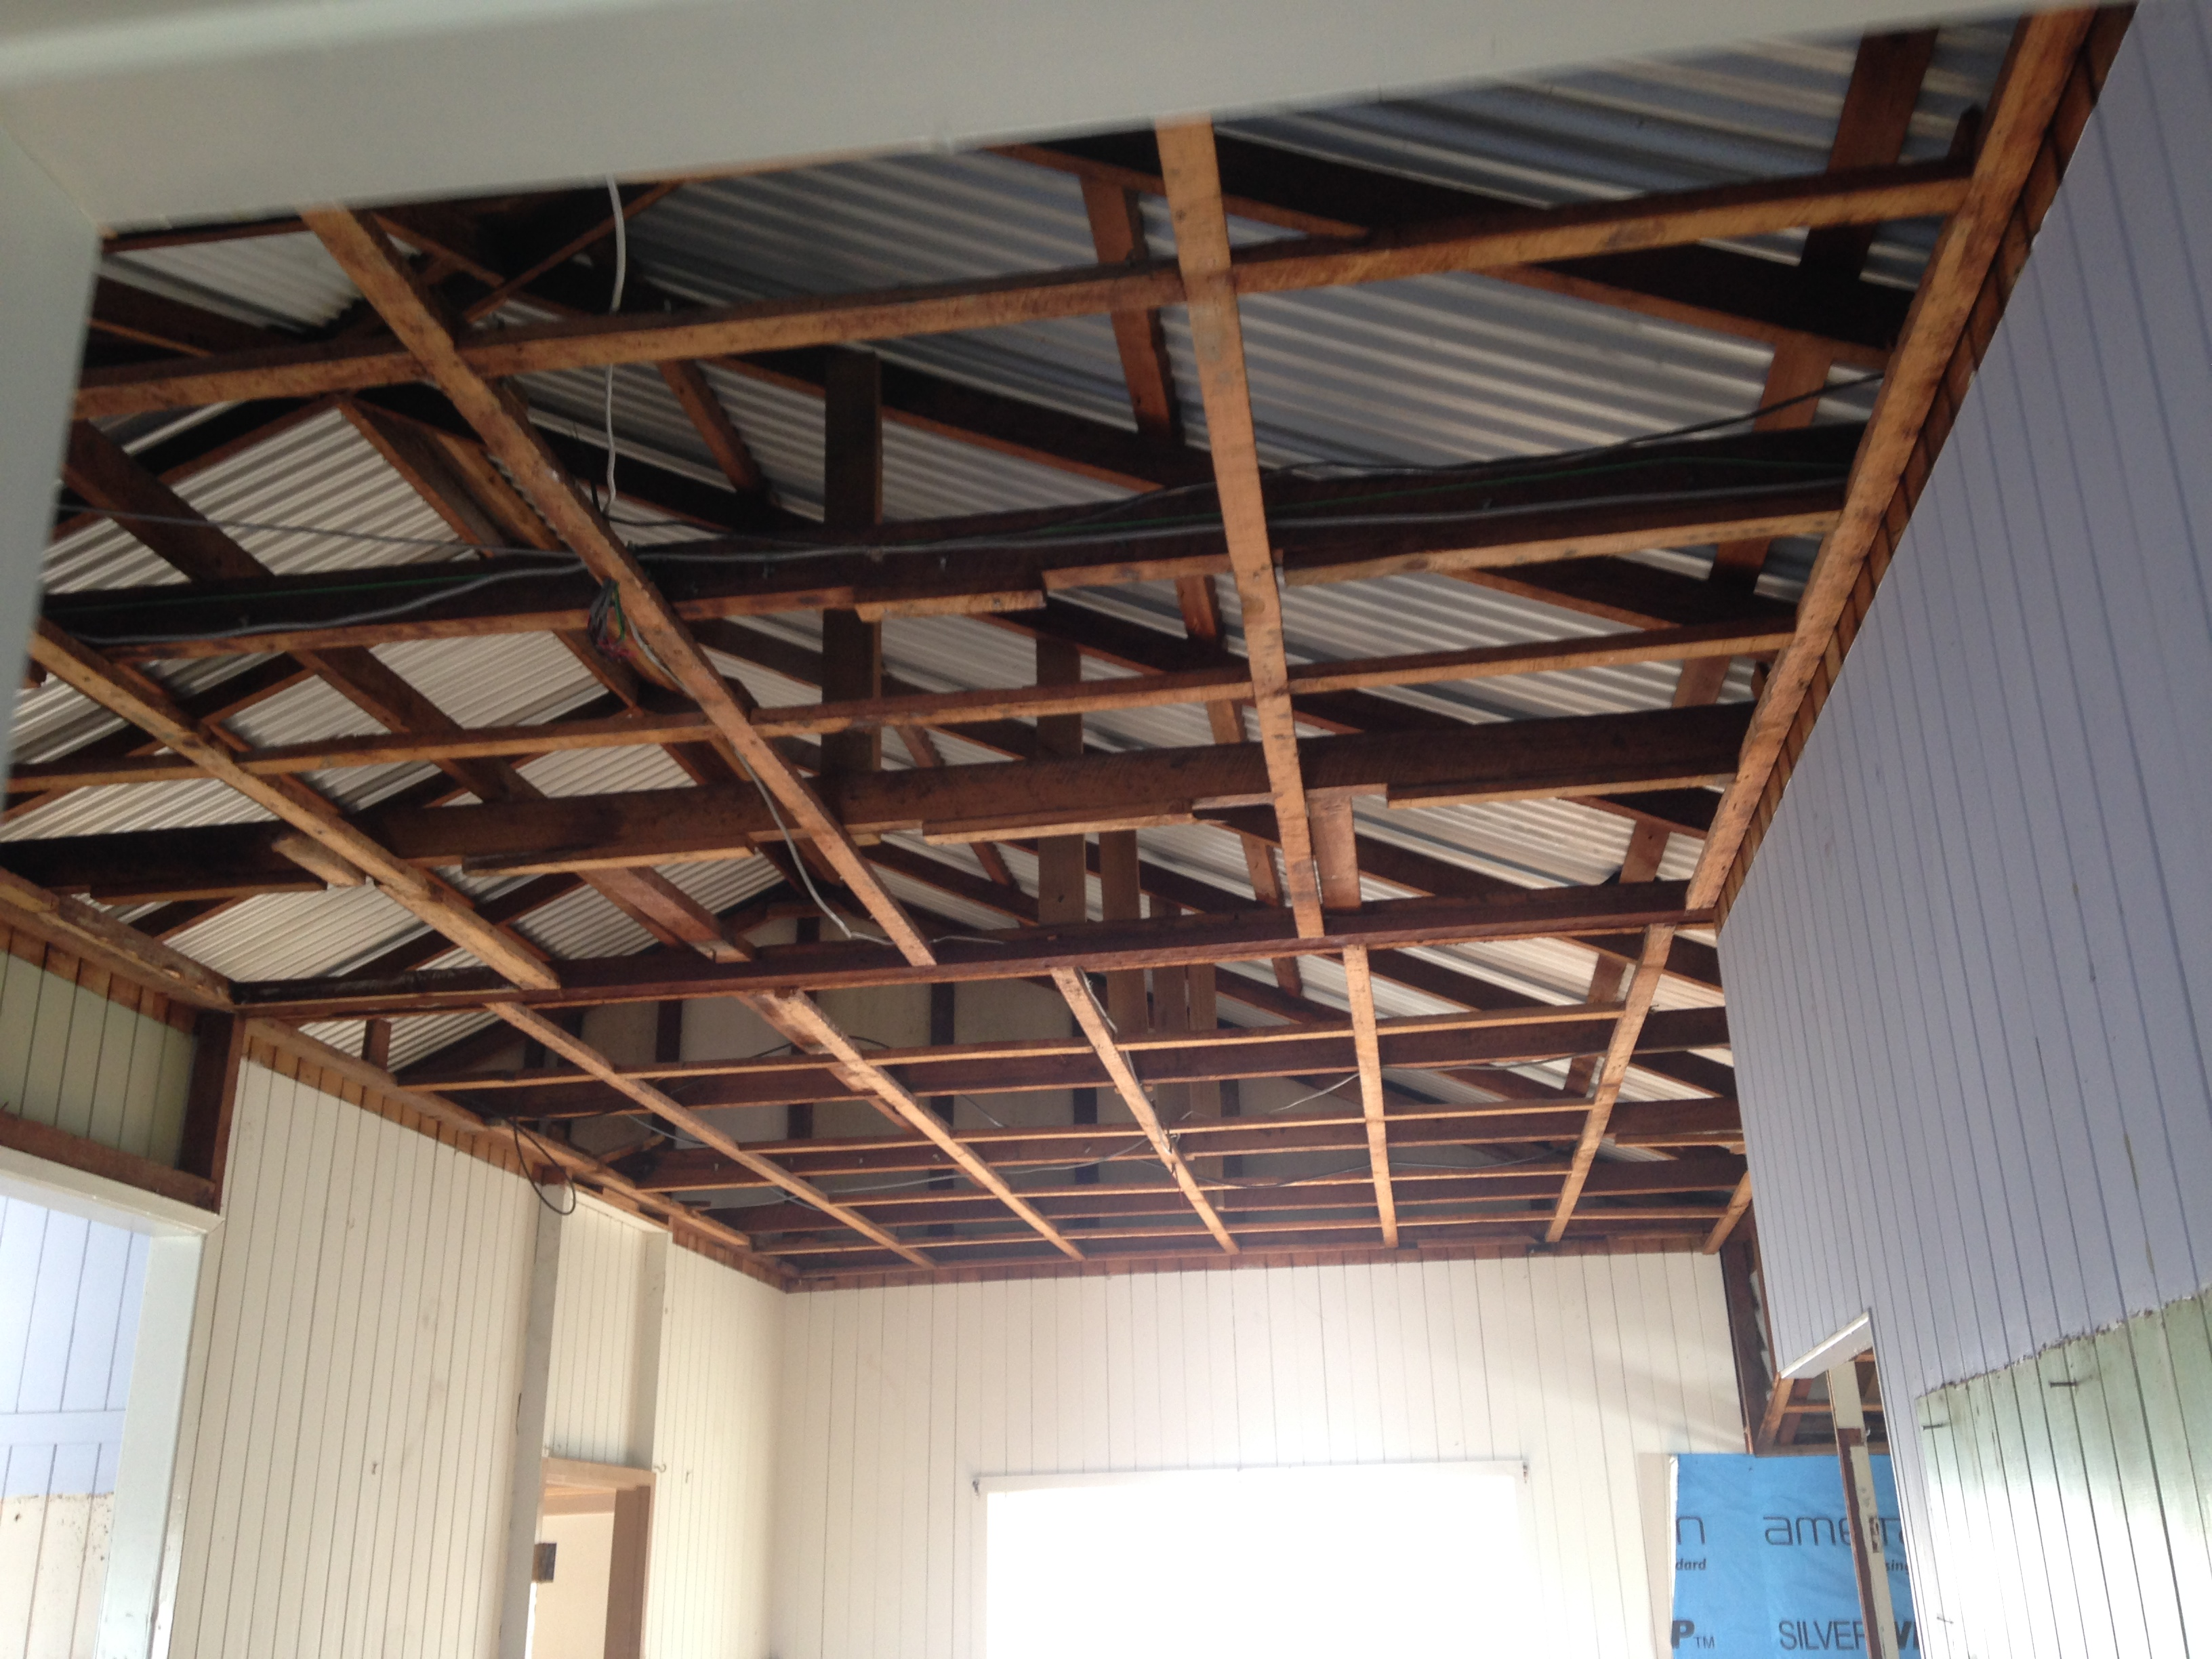 66c452 e1db94e892fd4ba0af59c9776957c040 - Asbestos ceiling removal what to expect on the day.